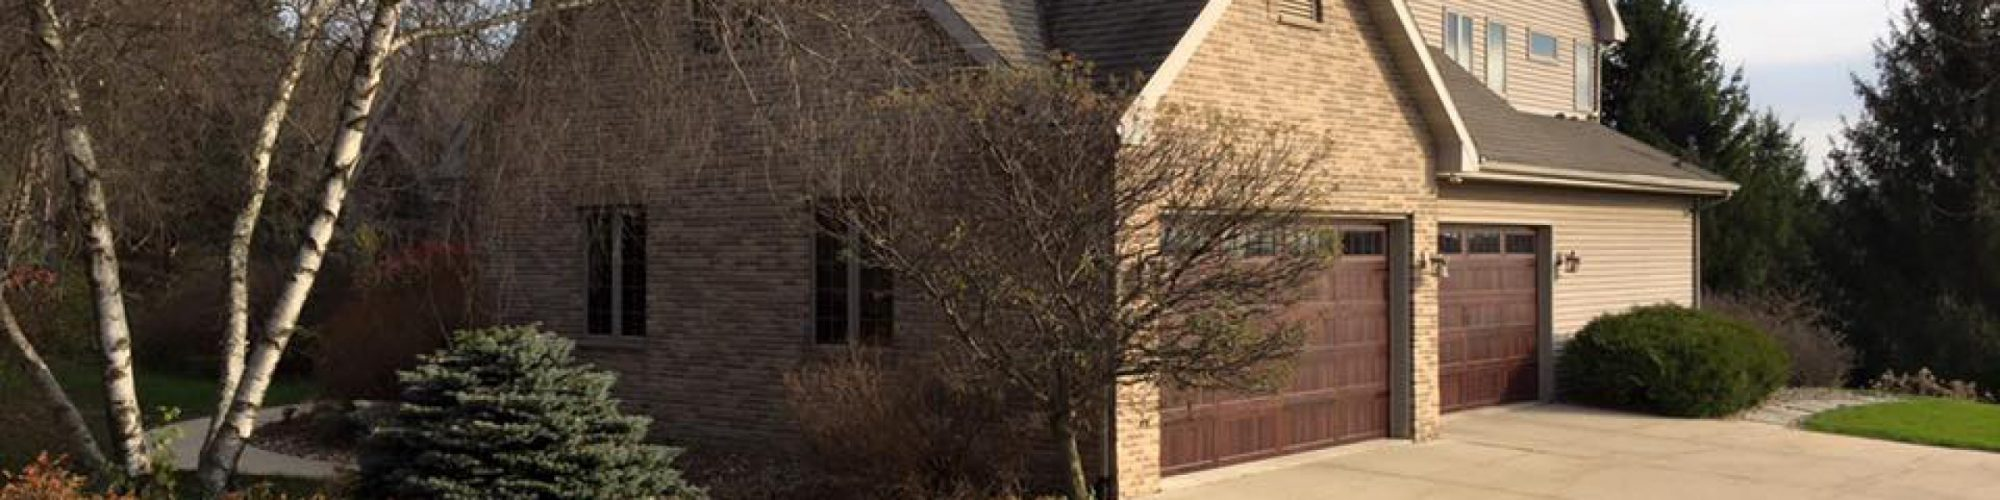 Hardin Home: Home Improvement Projects at a Country Home in Verona, WI